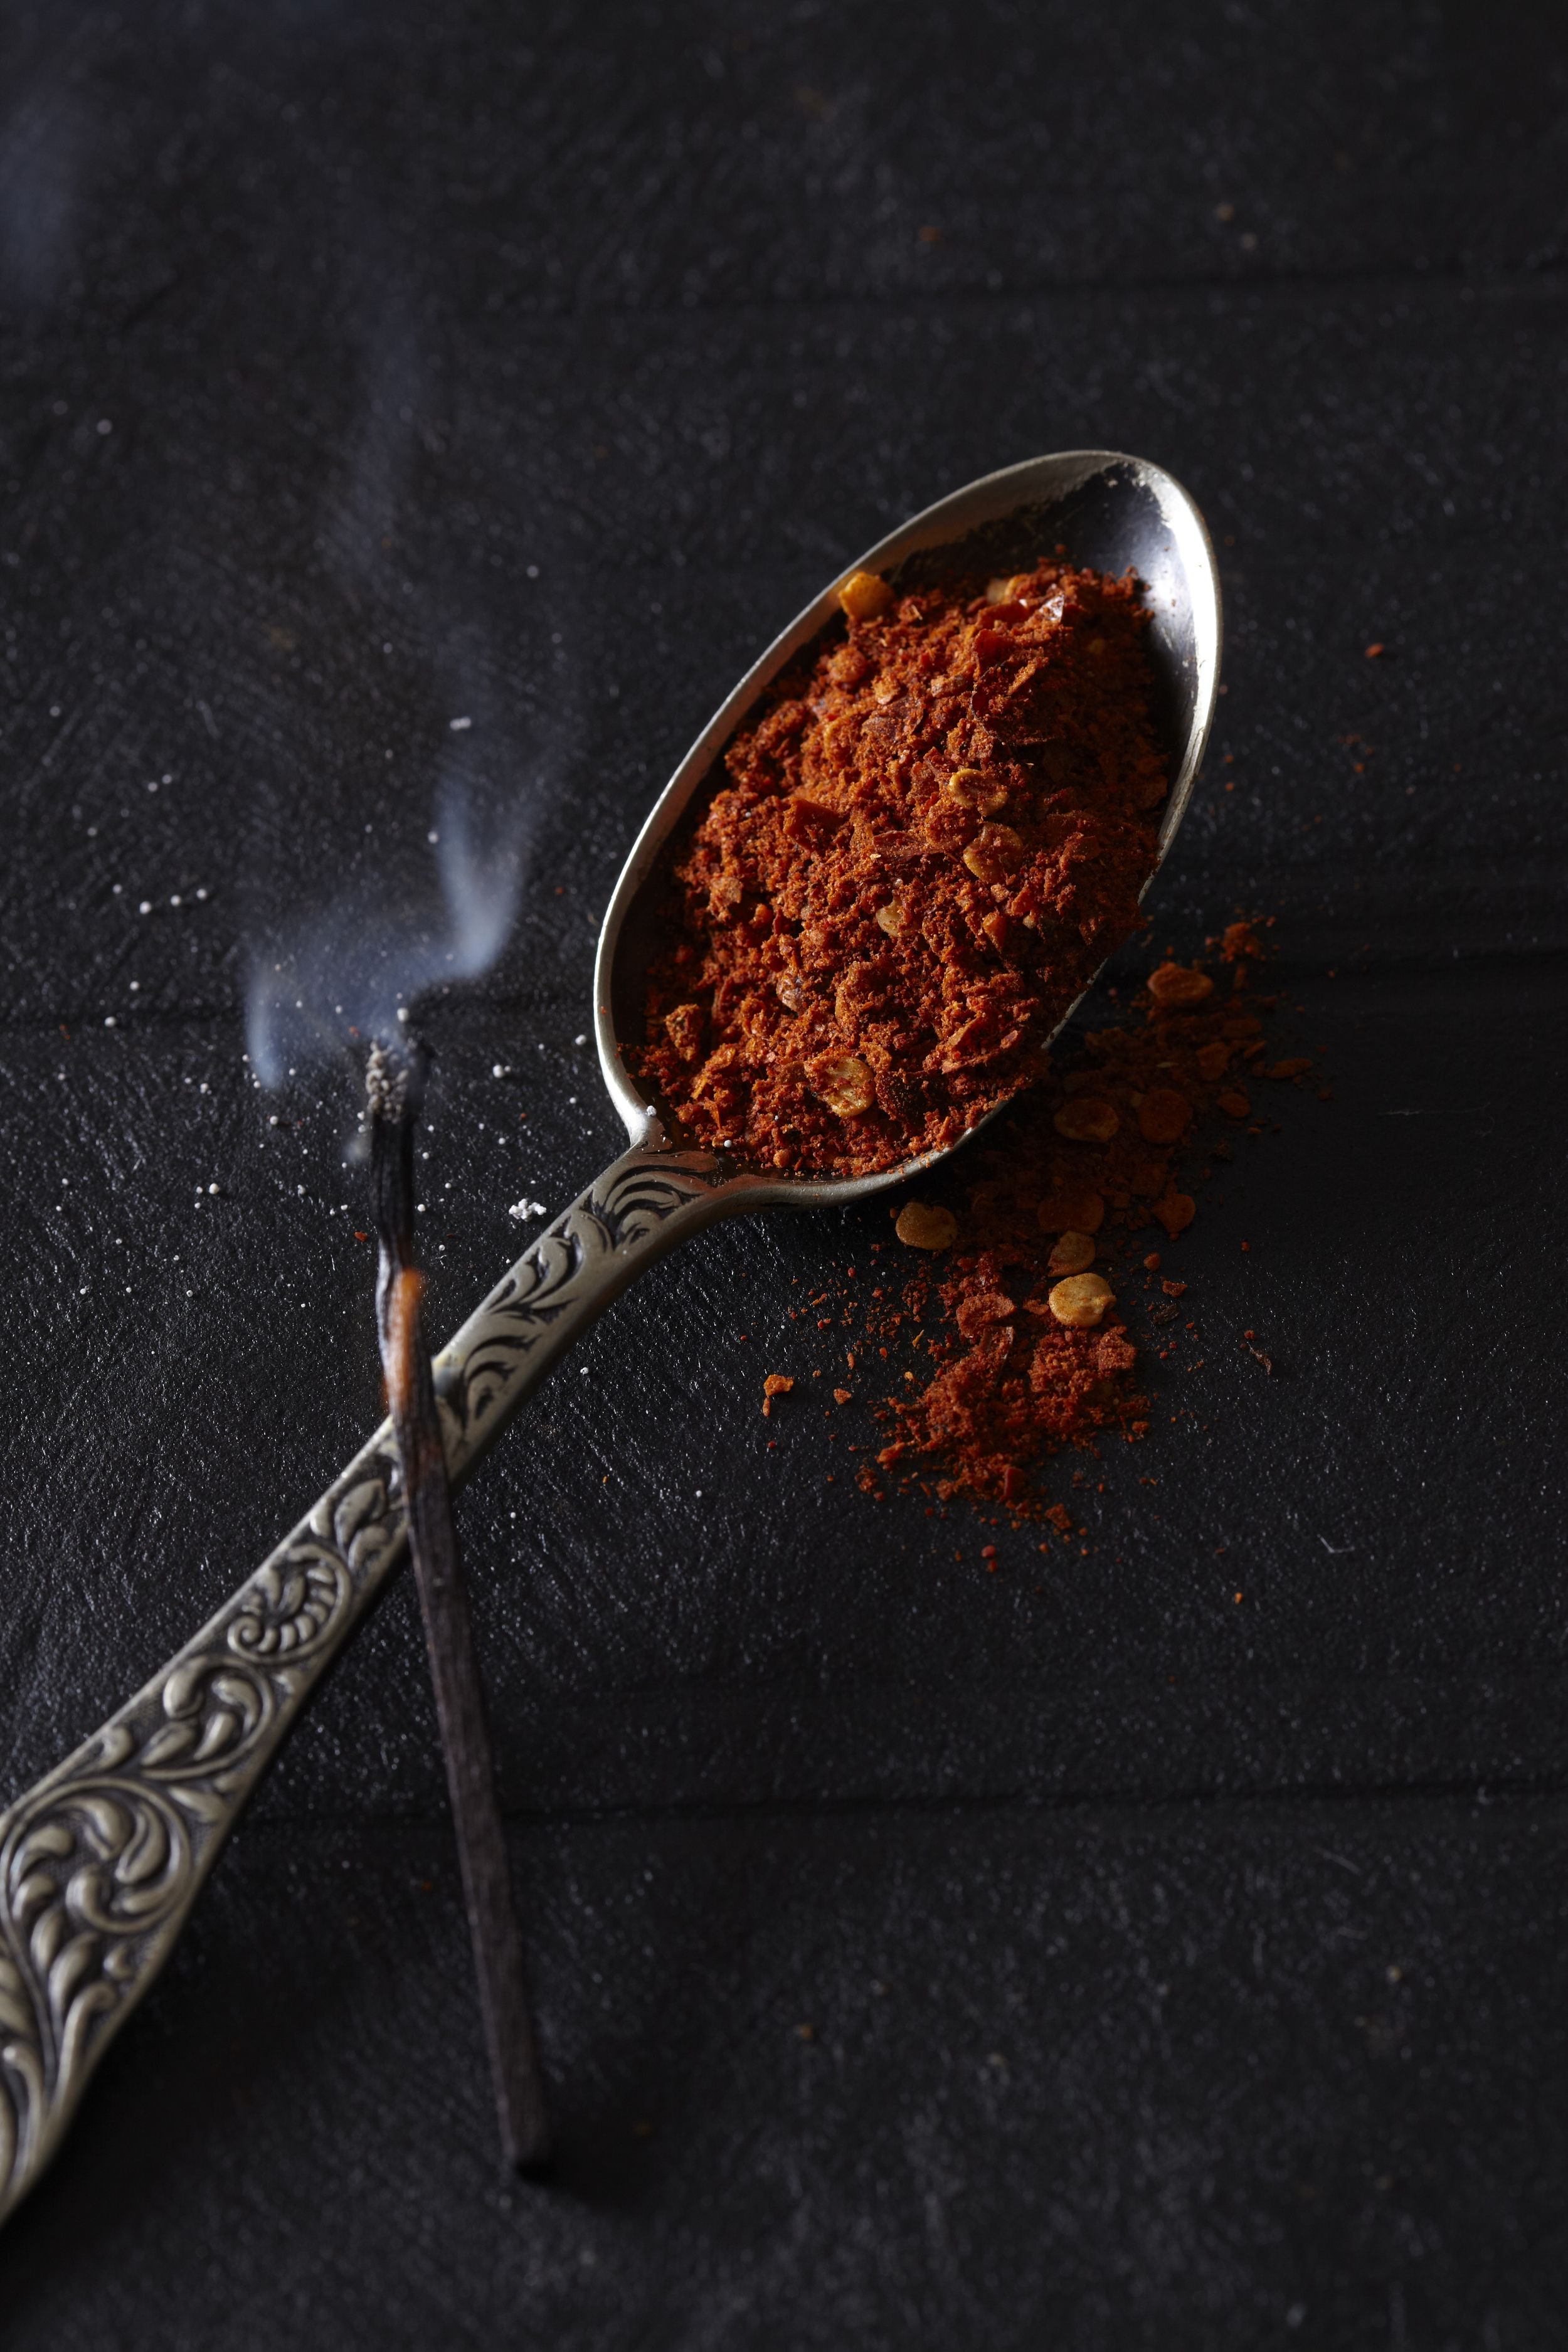 Spices_FireStarter_Spoon_043.jpg